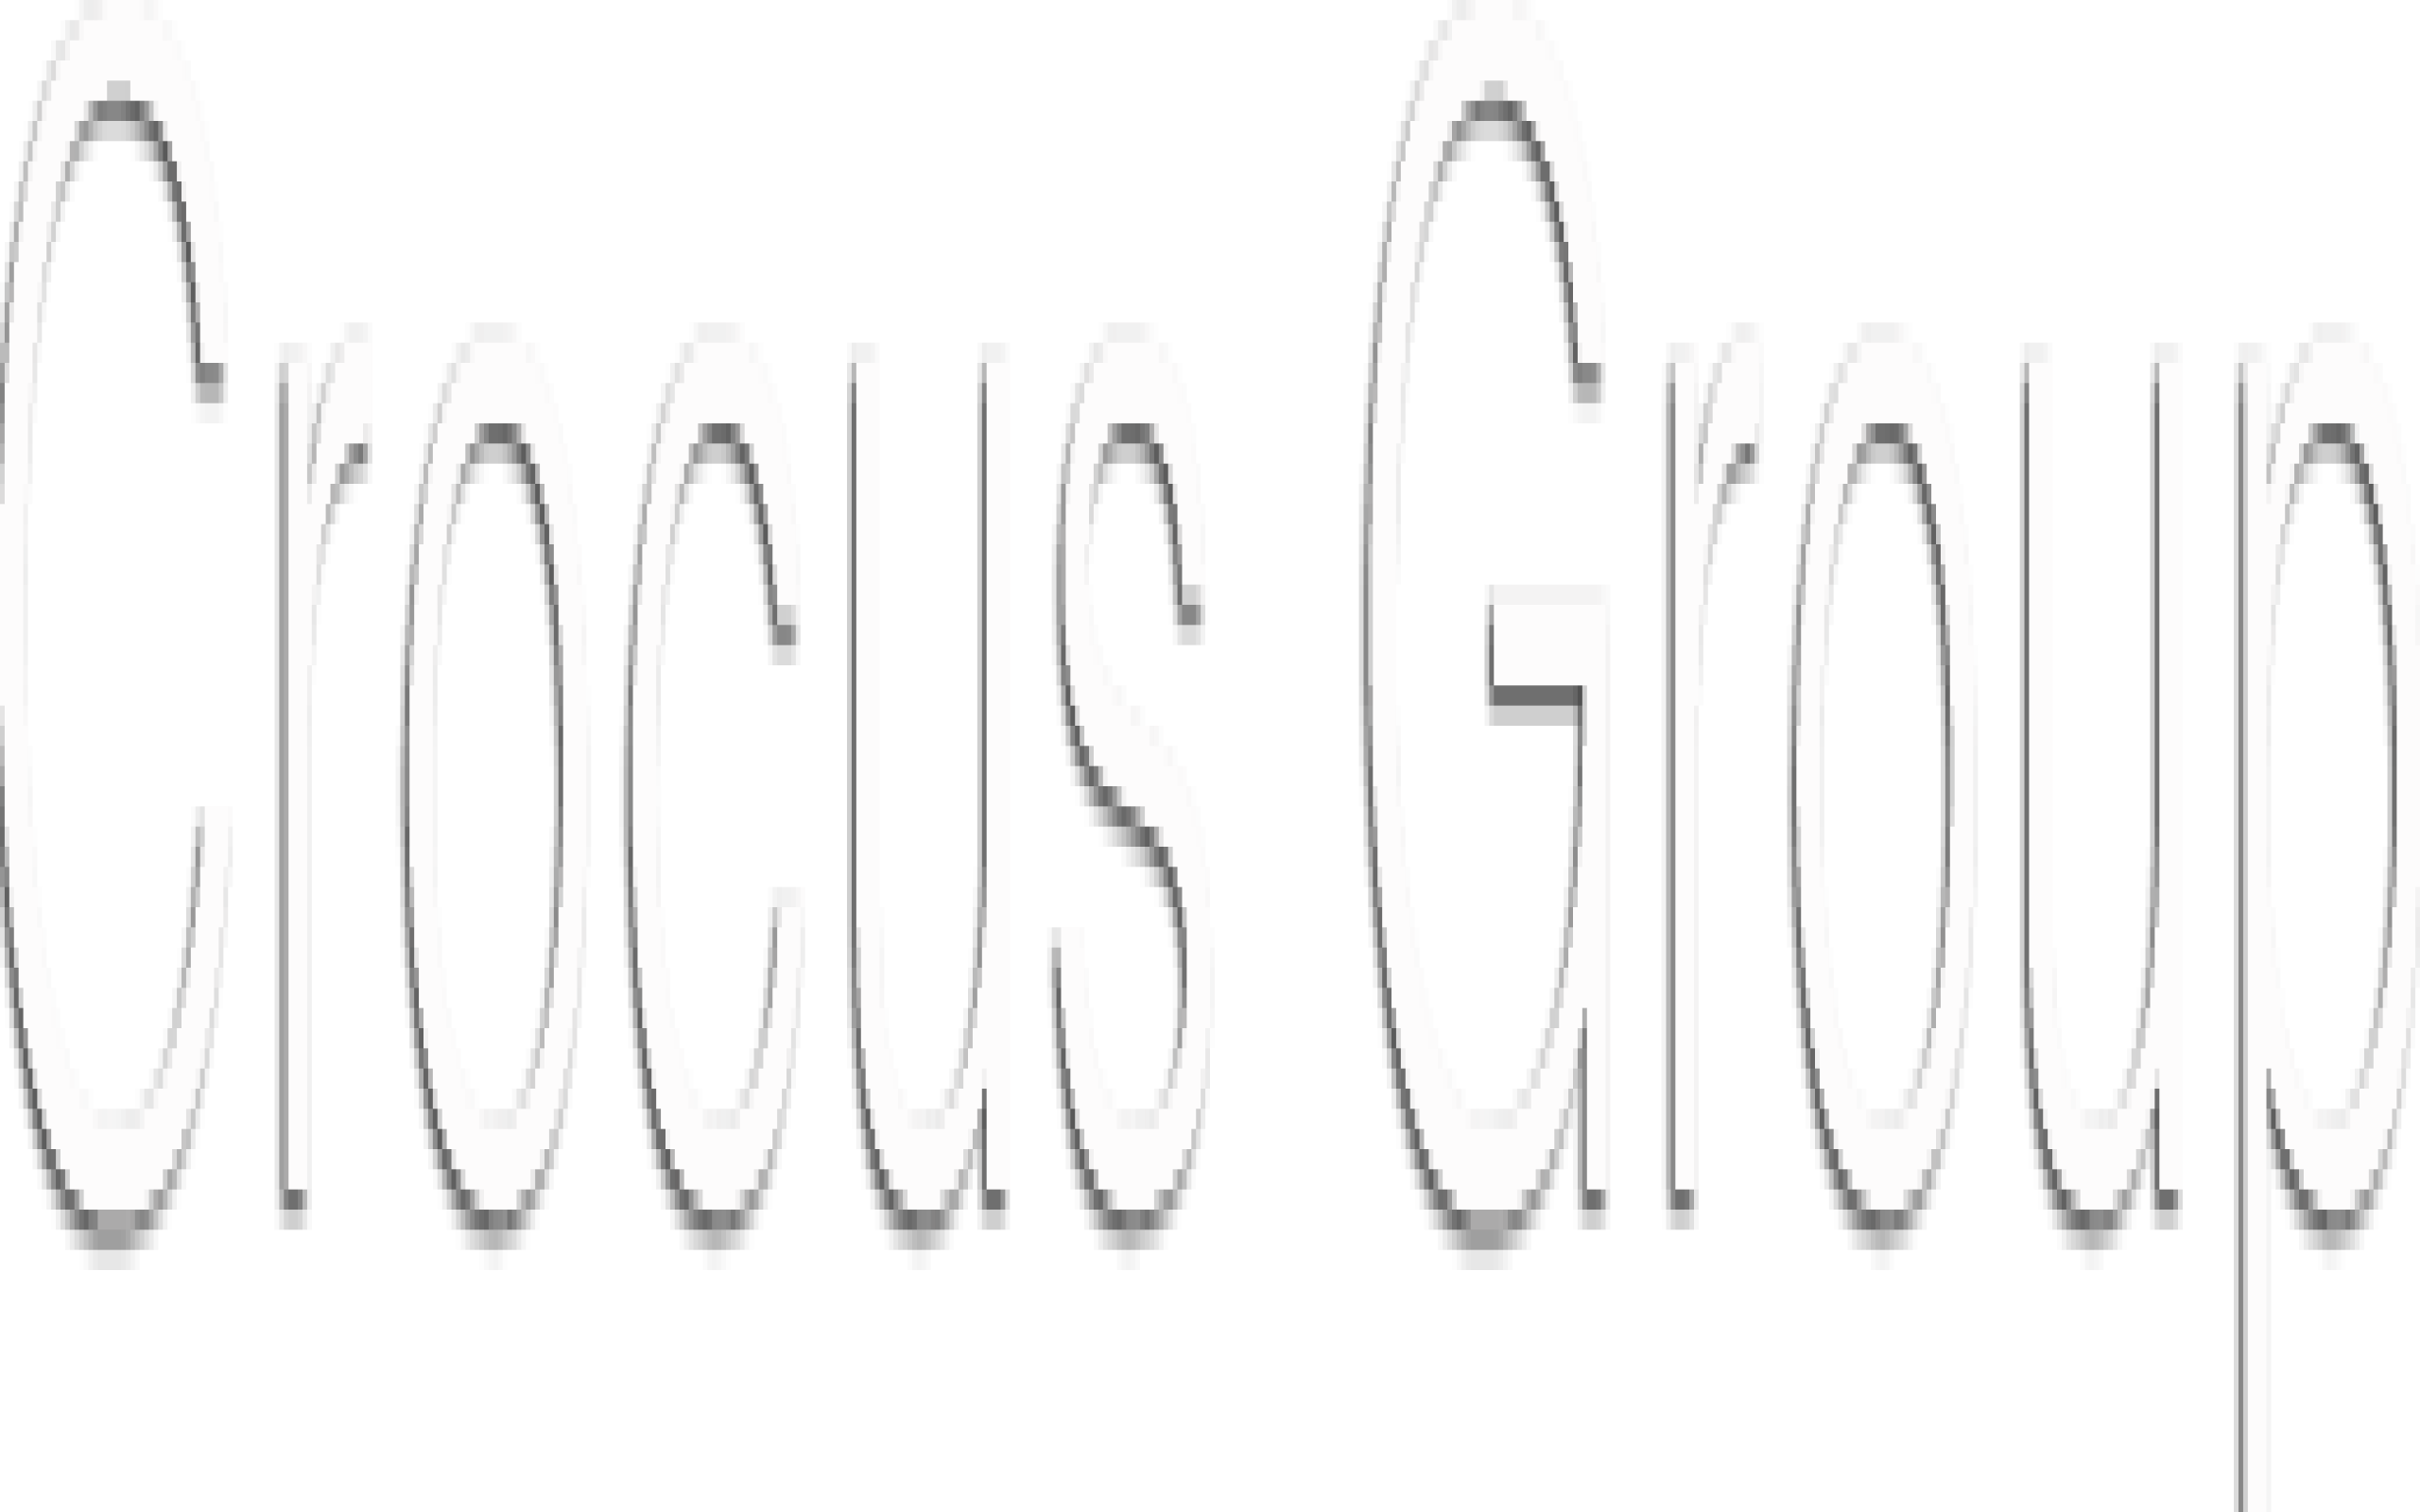 Crocus_Group_kopia.png